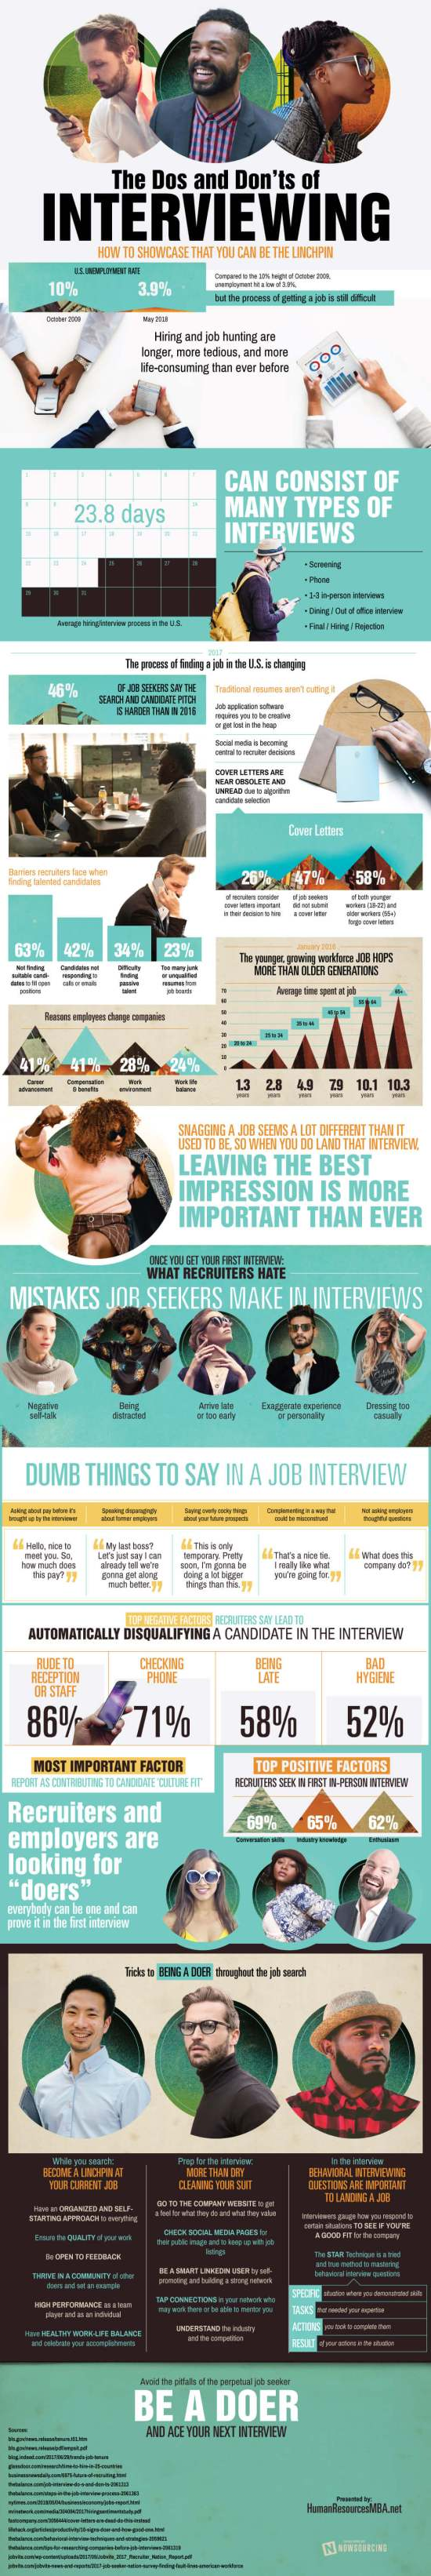 How To Ace Your Next Job Interview [Infographic] 1